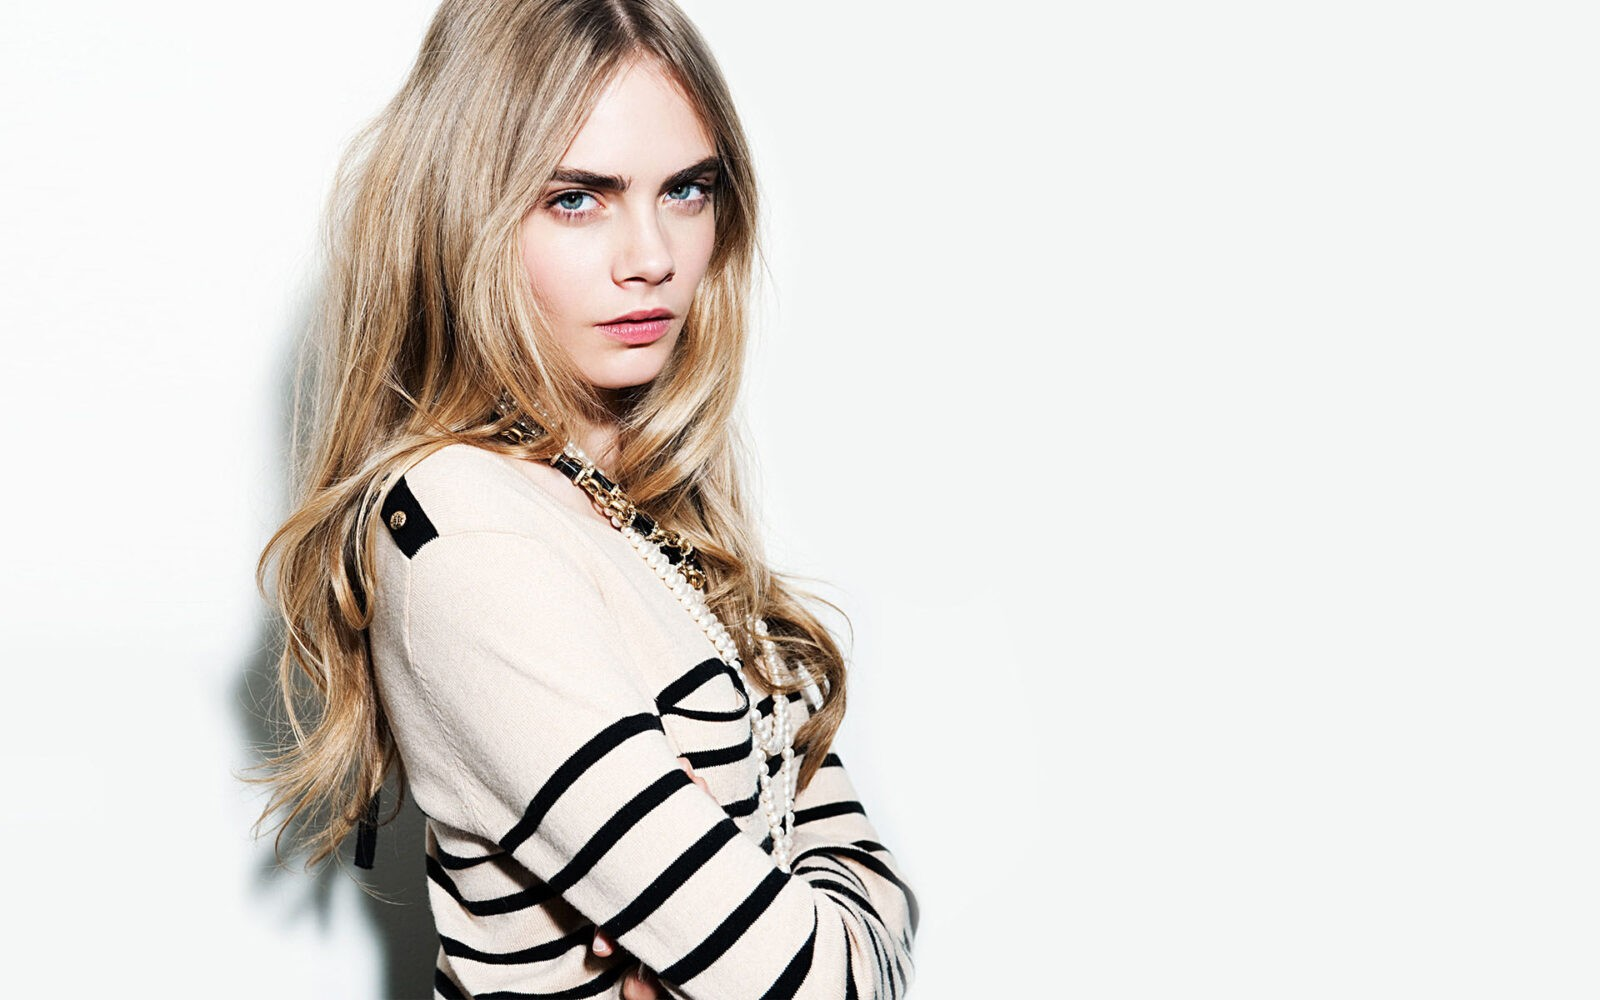 Photo Cara Delevingne dressed in the sweater with lines